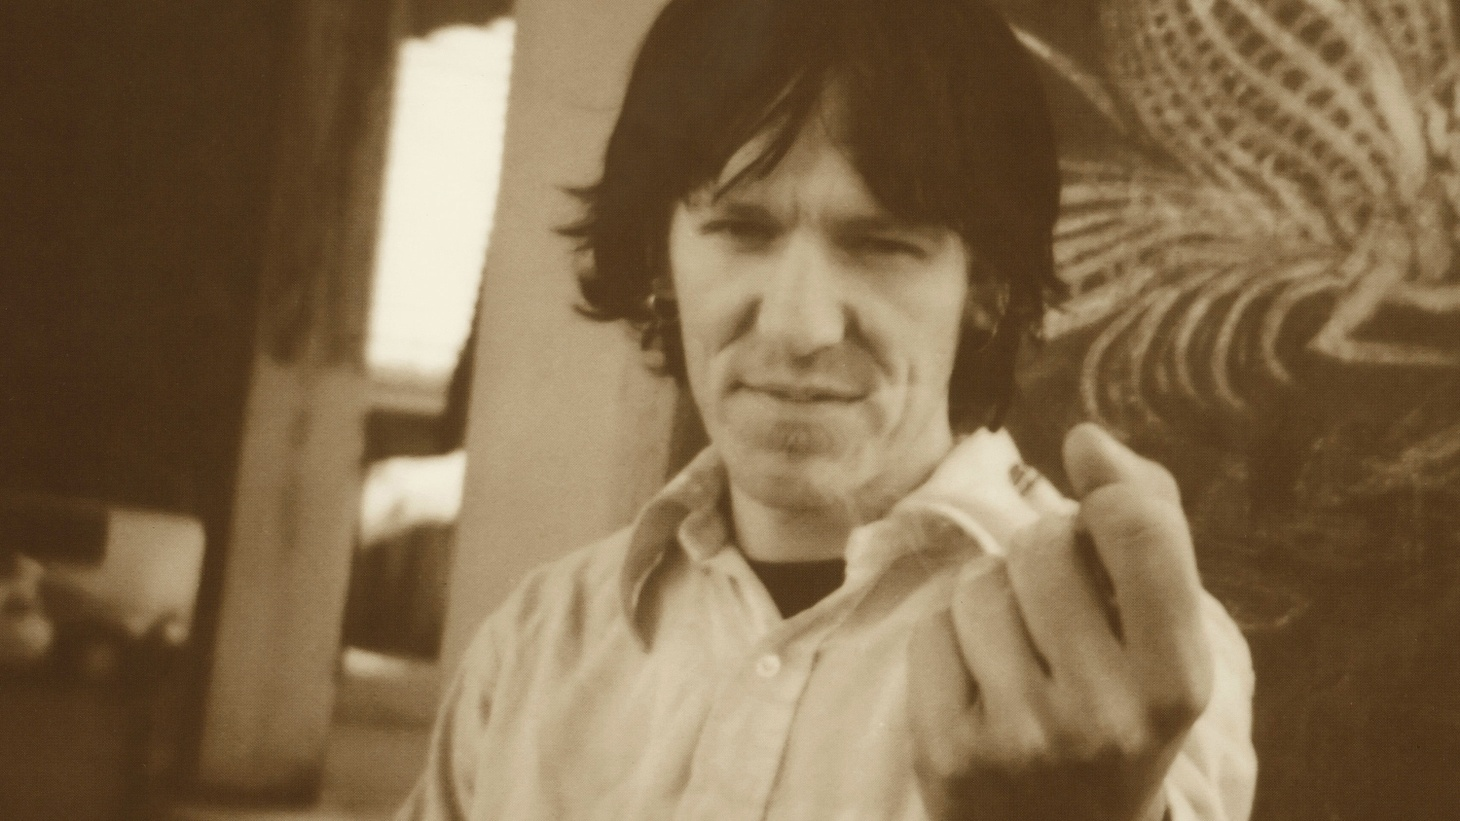 Elliott Smith's most beloved album turns 20 this year, and to commemorate the occasion an expanded edition of Either/Or will be released in March.